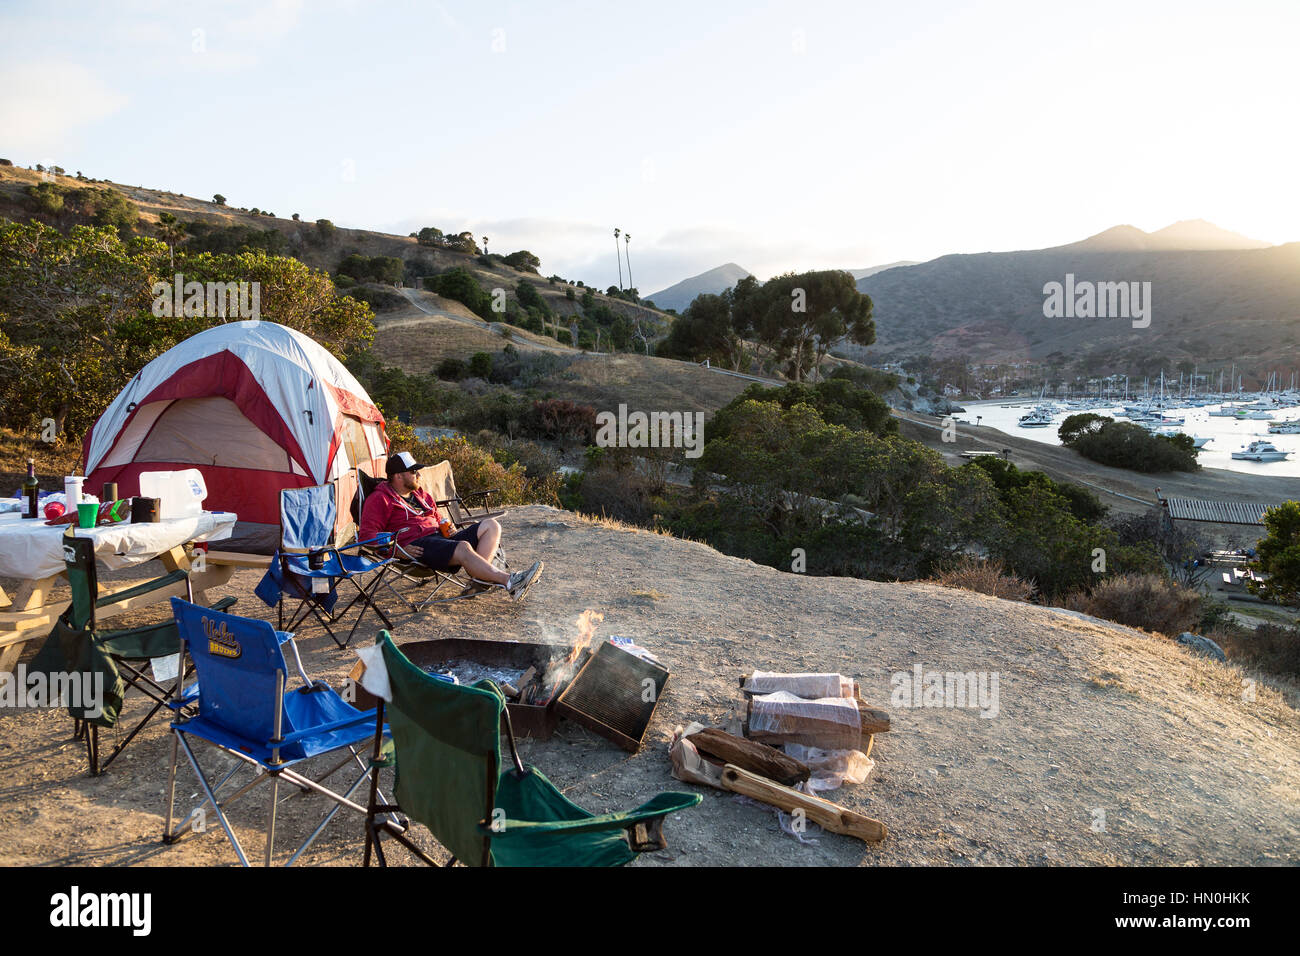 A man relaxes at camp as the sun sets over Two Harbors on Catalina Island. - Stock Image